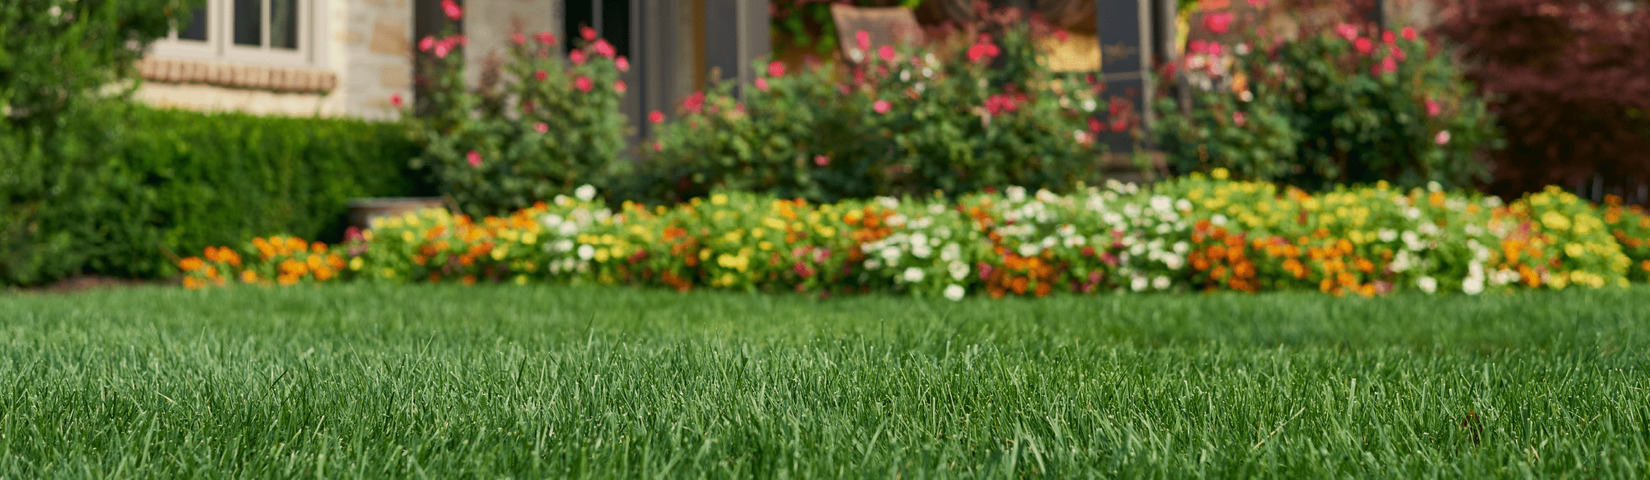 Soil & Mulch For Lawn and Garden